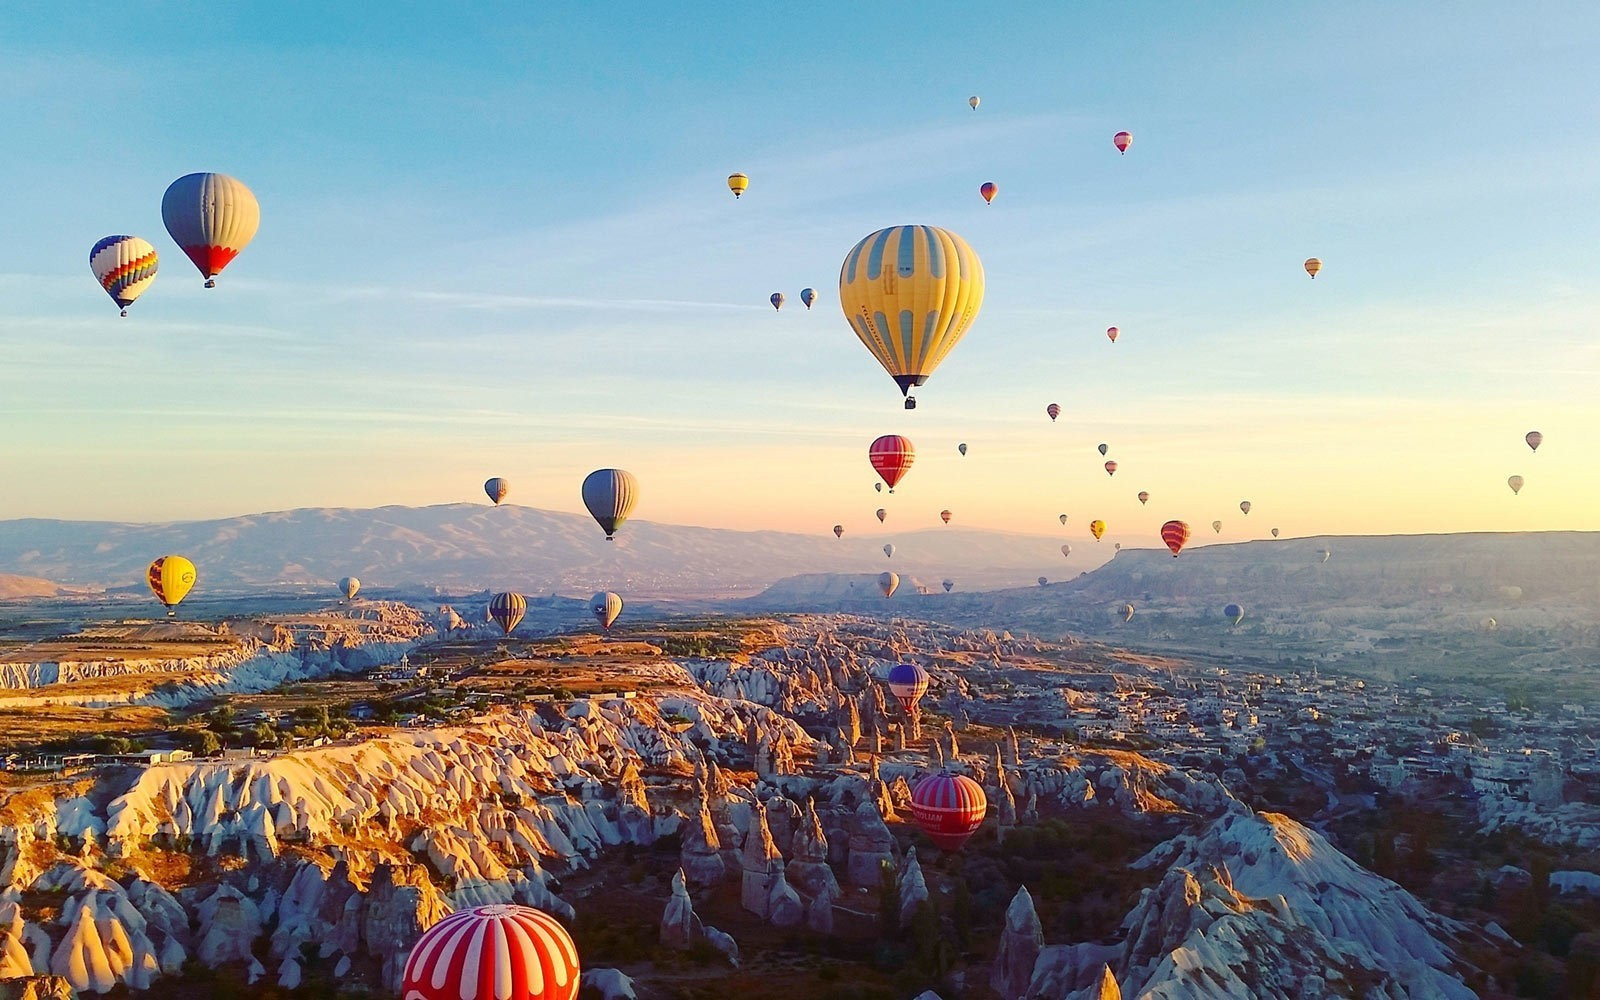 Flying in a Hot Air Balloon in Cappadocia Should Be on Your Bucket List